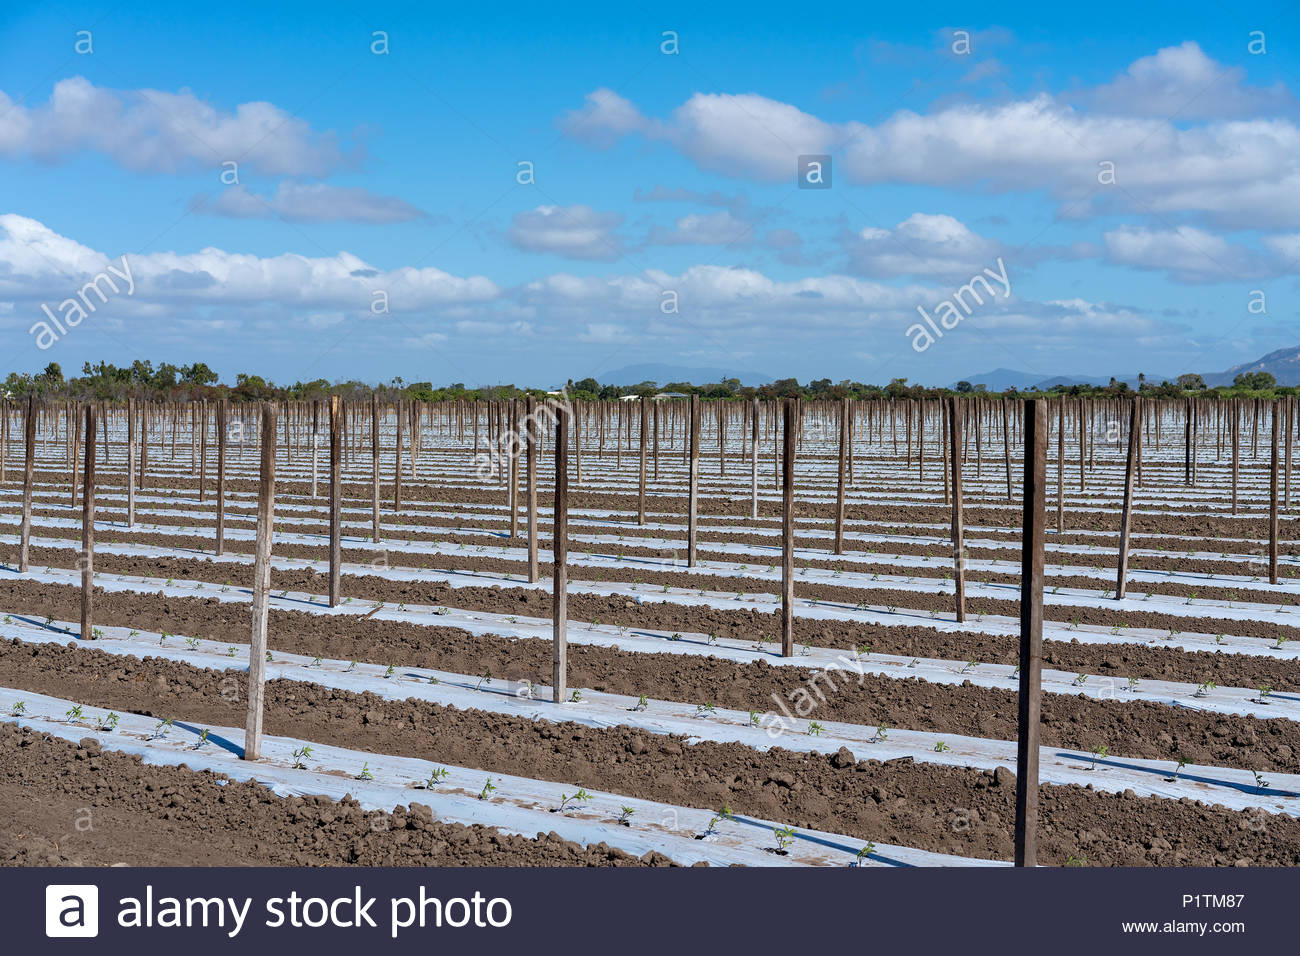 Rows of young tomatoes planted in plastic to prevent weeds. The ...